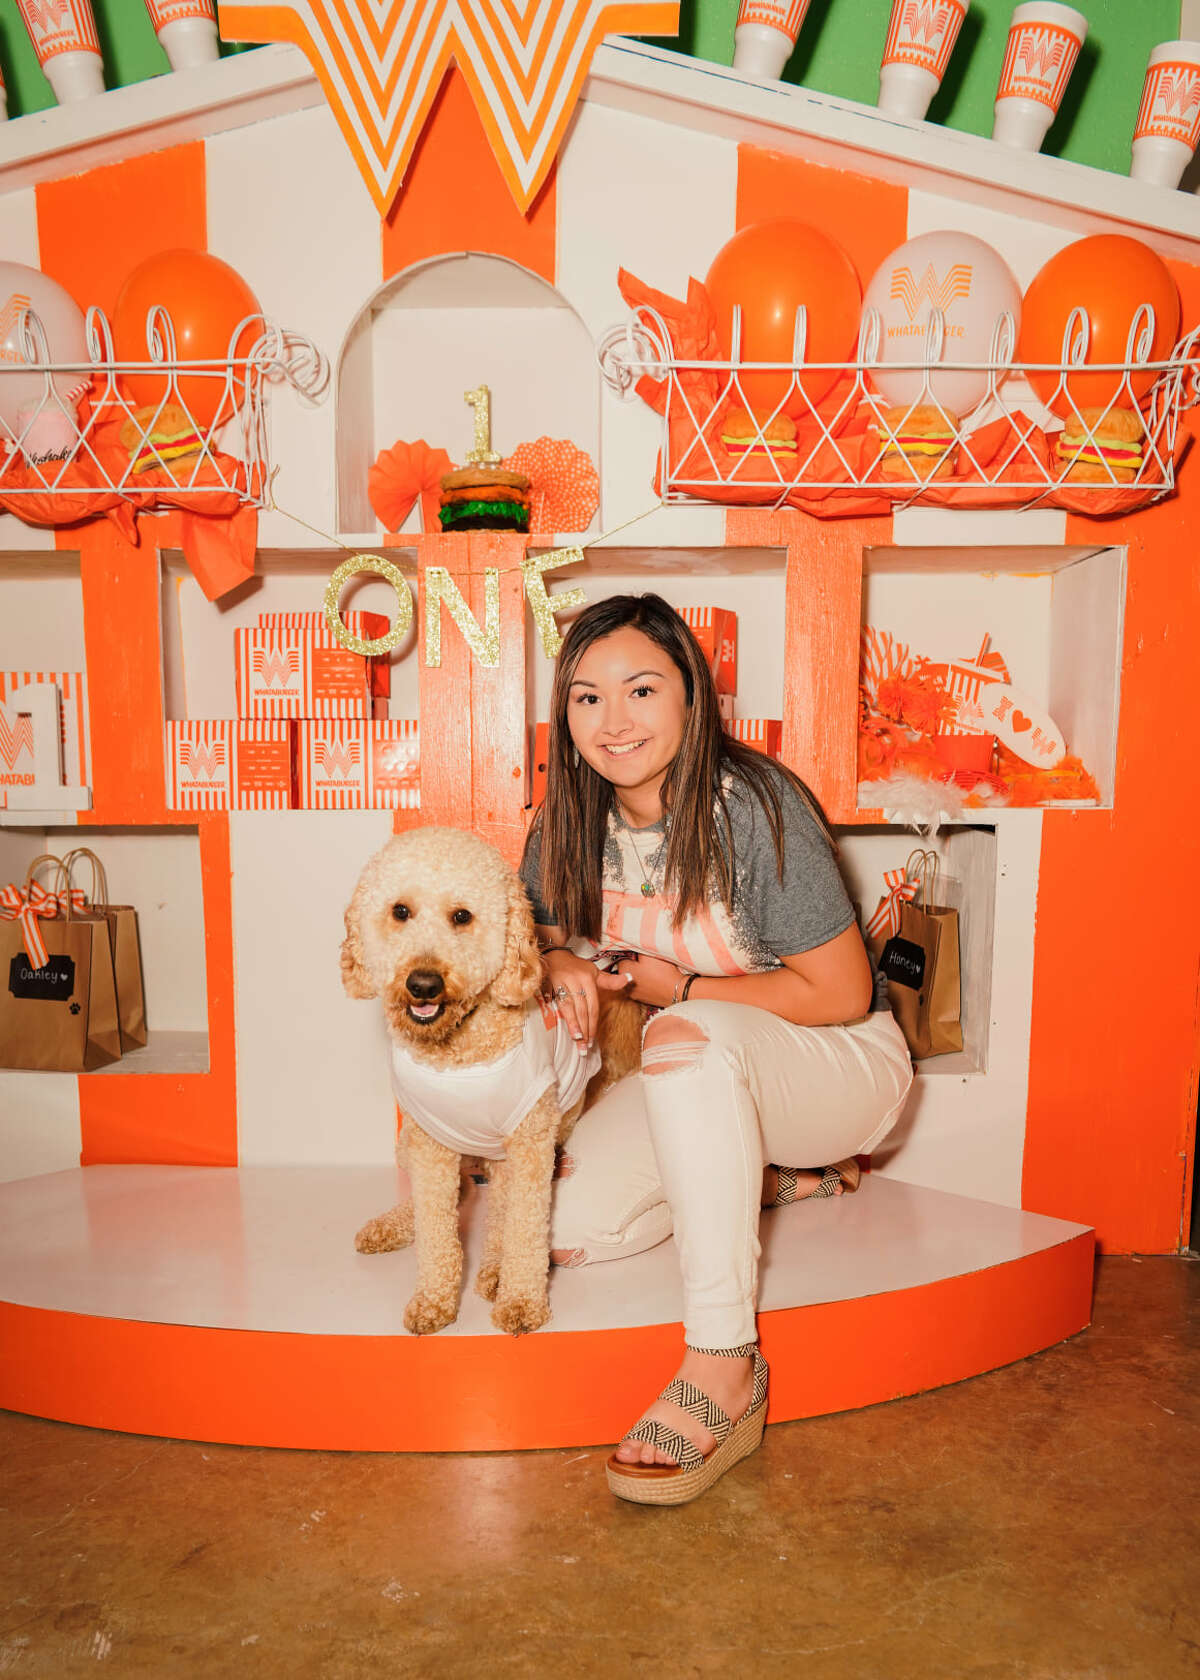 Chuco is the 1-year-old San Antonio Goldendoodle who had a Whataburger-inspired party.